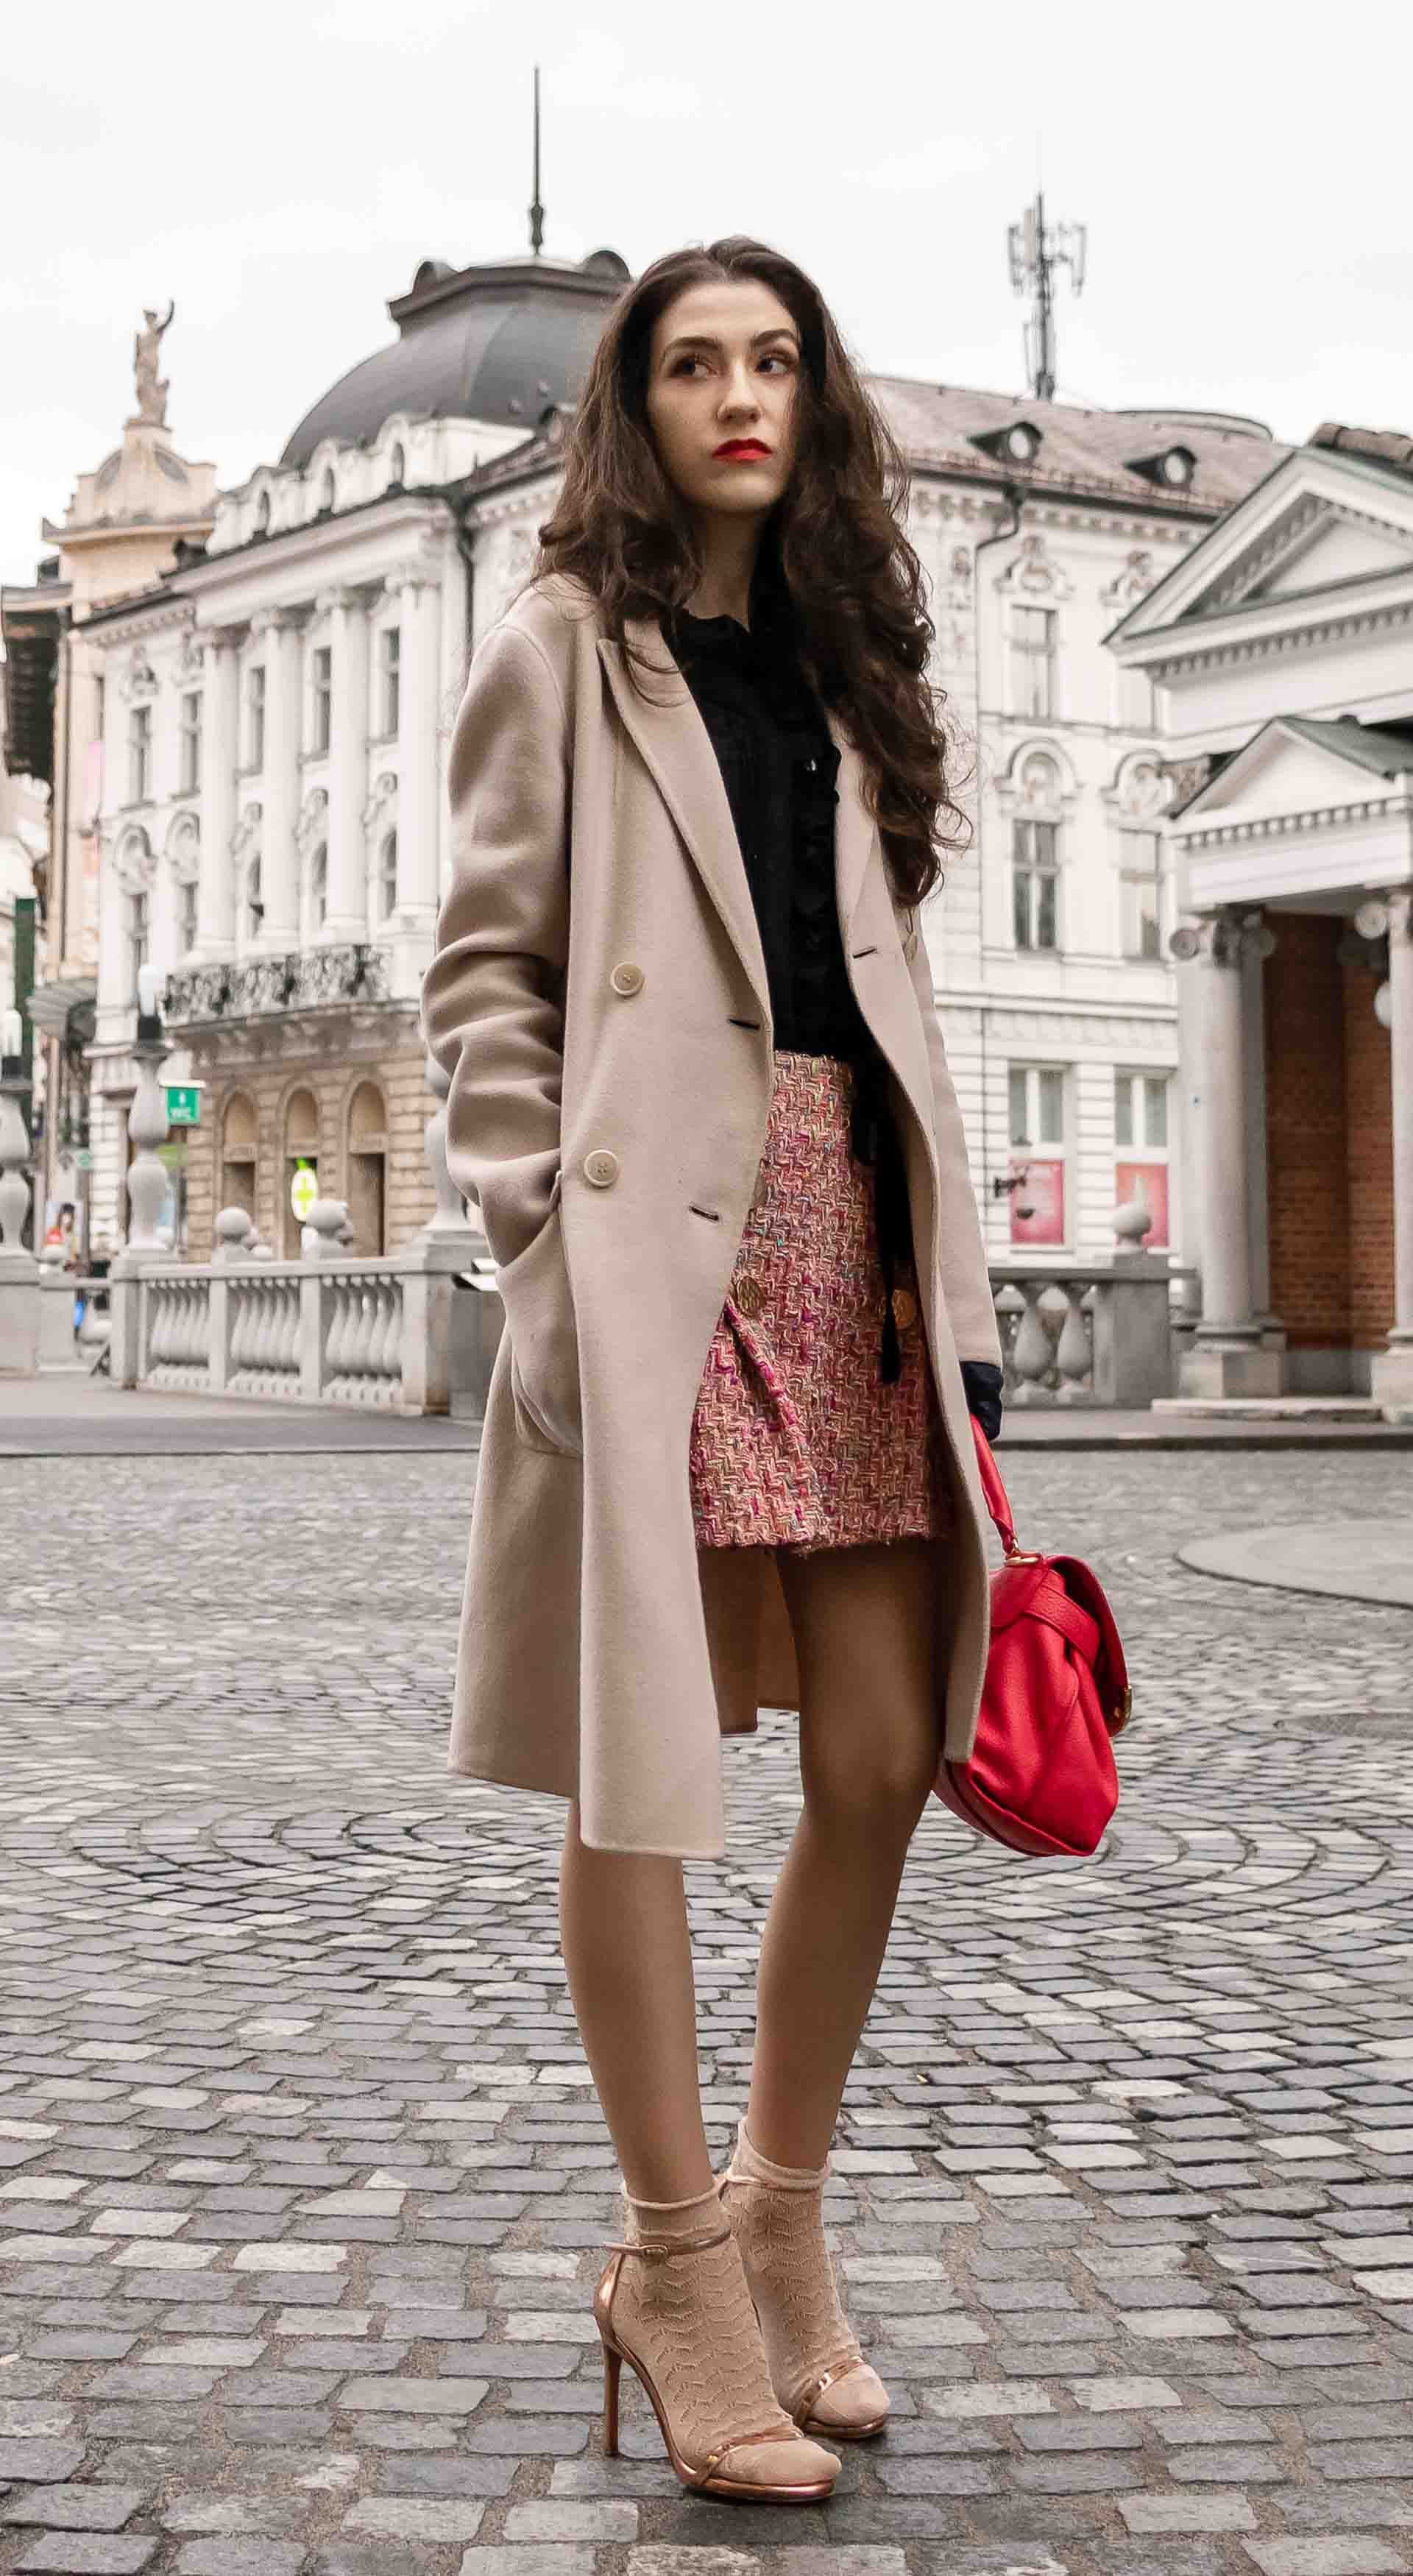 Fashion Blogger Veronika Lipar of Brunette from Wall Street dressed in bronze socks and sandals from Stuart Weitzman, tweed Storets mini skirt, black blouse, off white Weekend Maxmara coat in Ljubljana